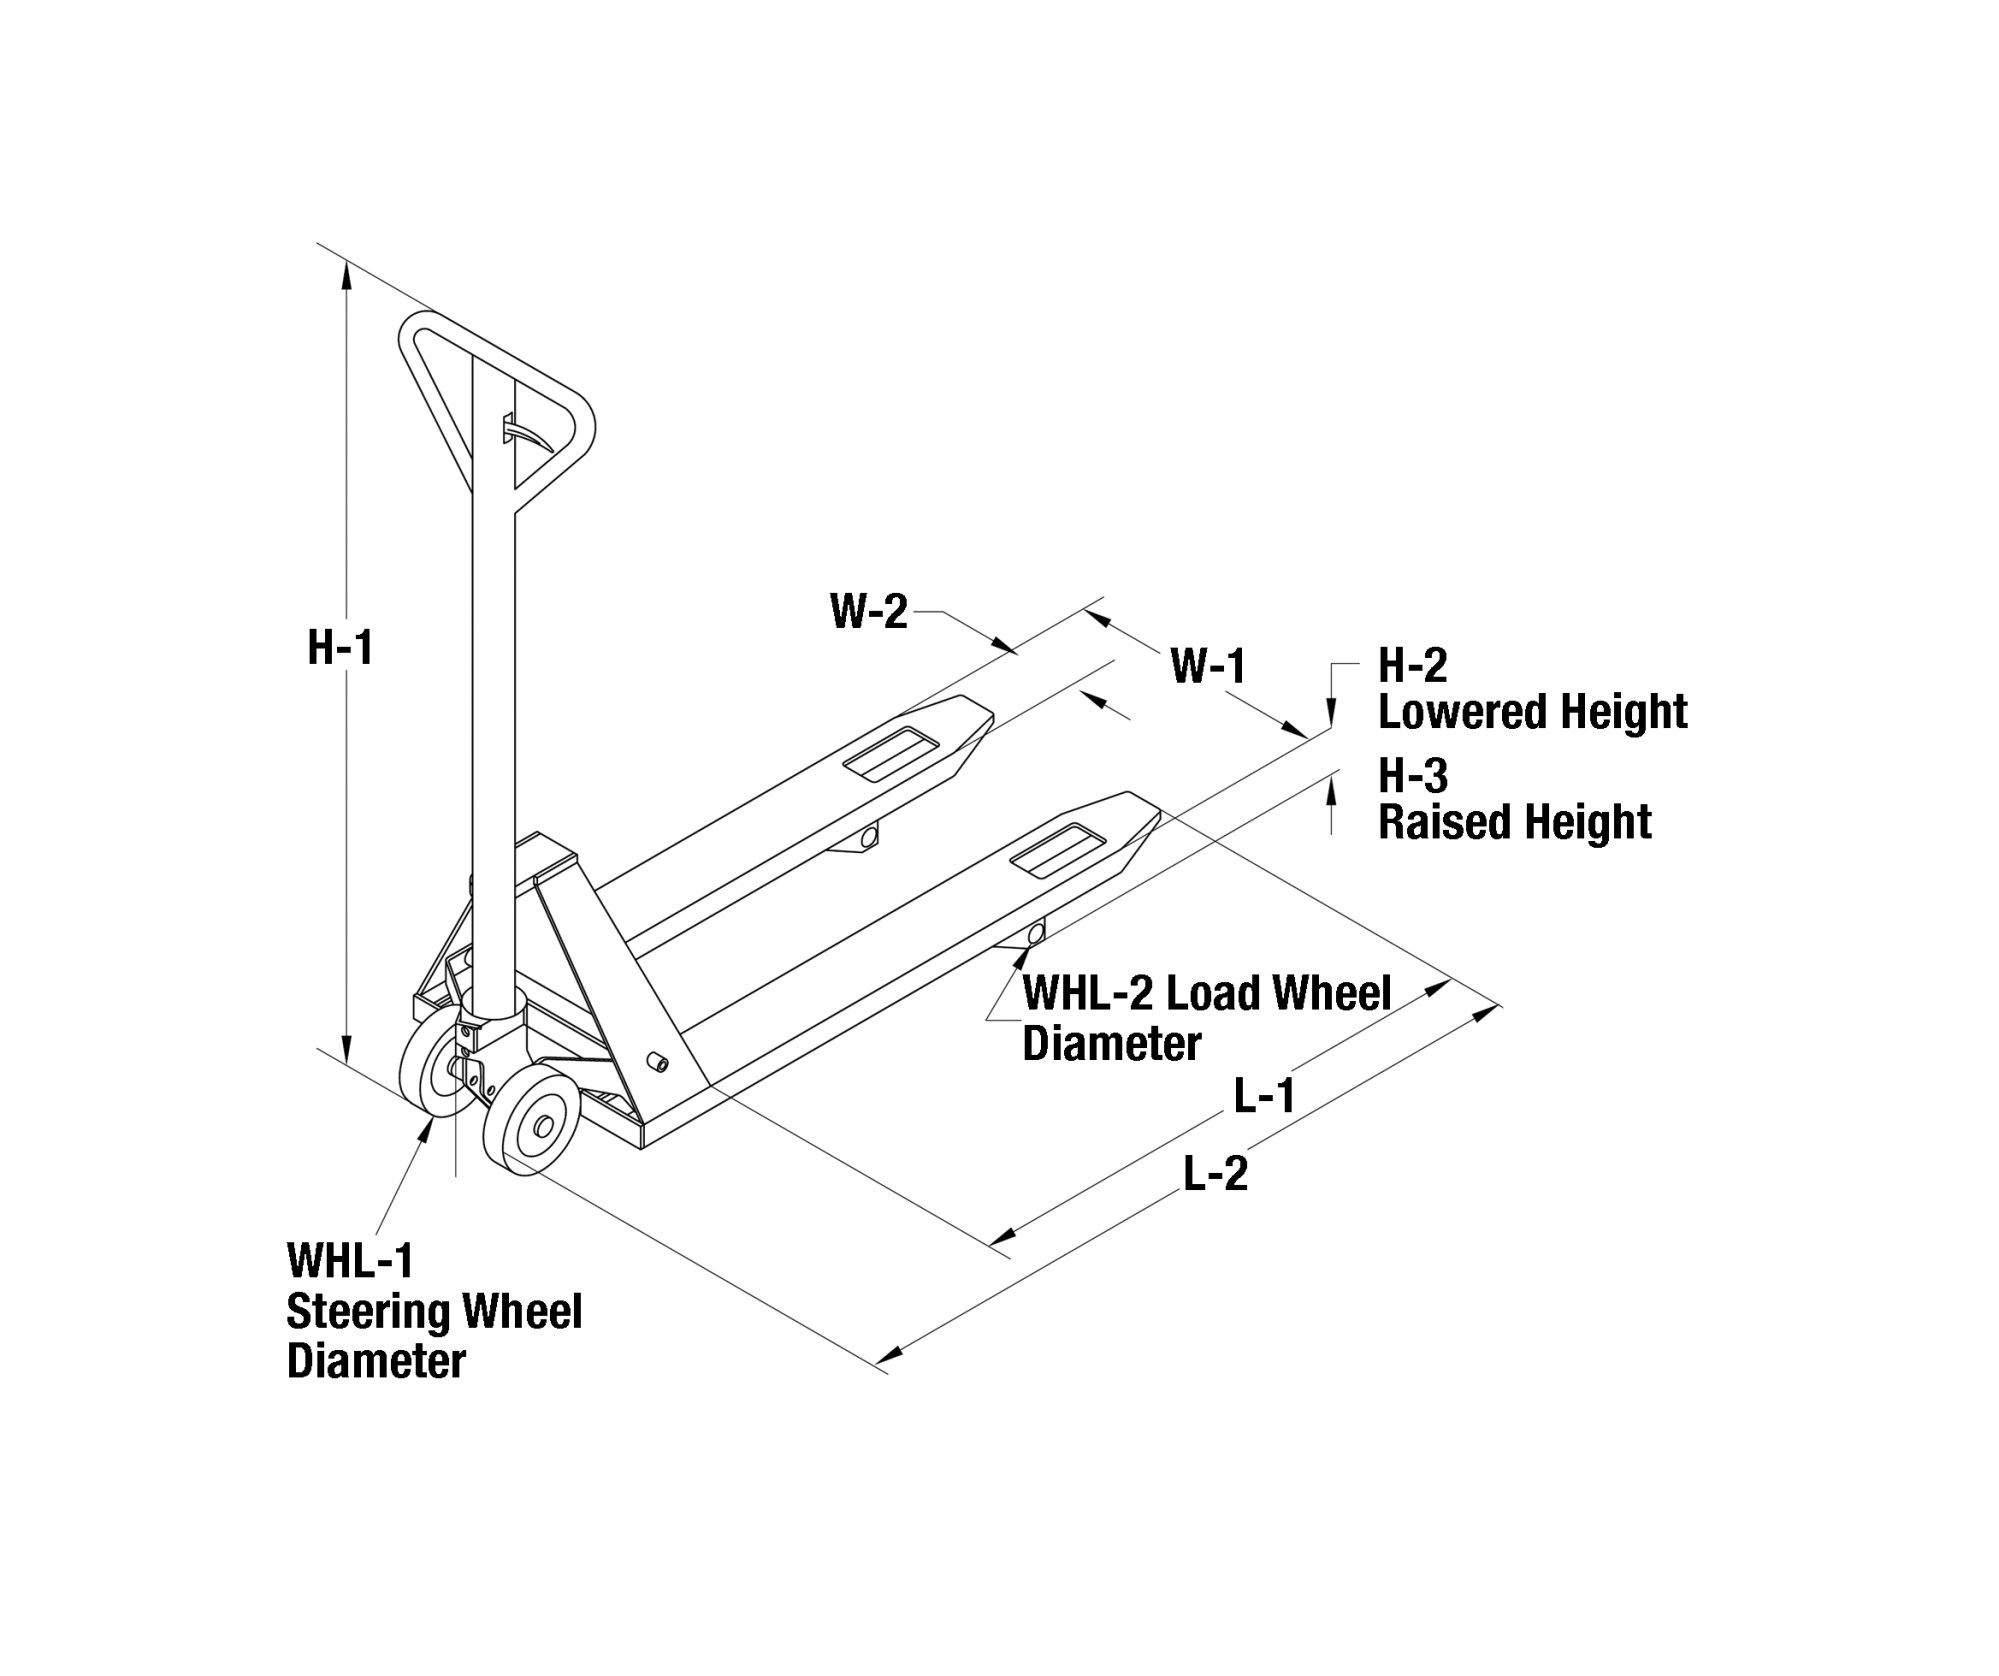 hight resolution of powered scale truck pallet truck schematic drawing